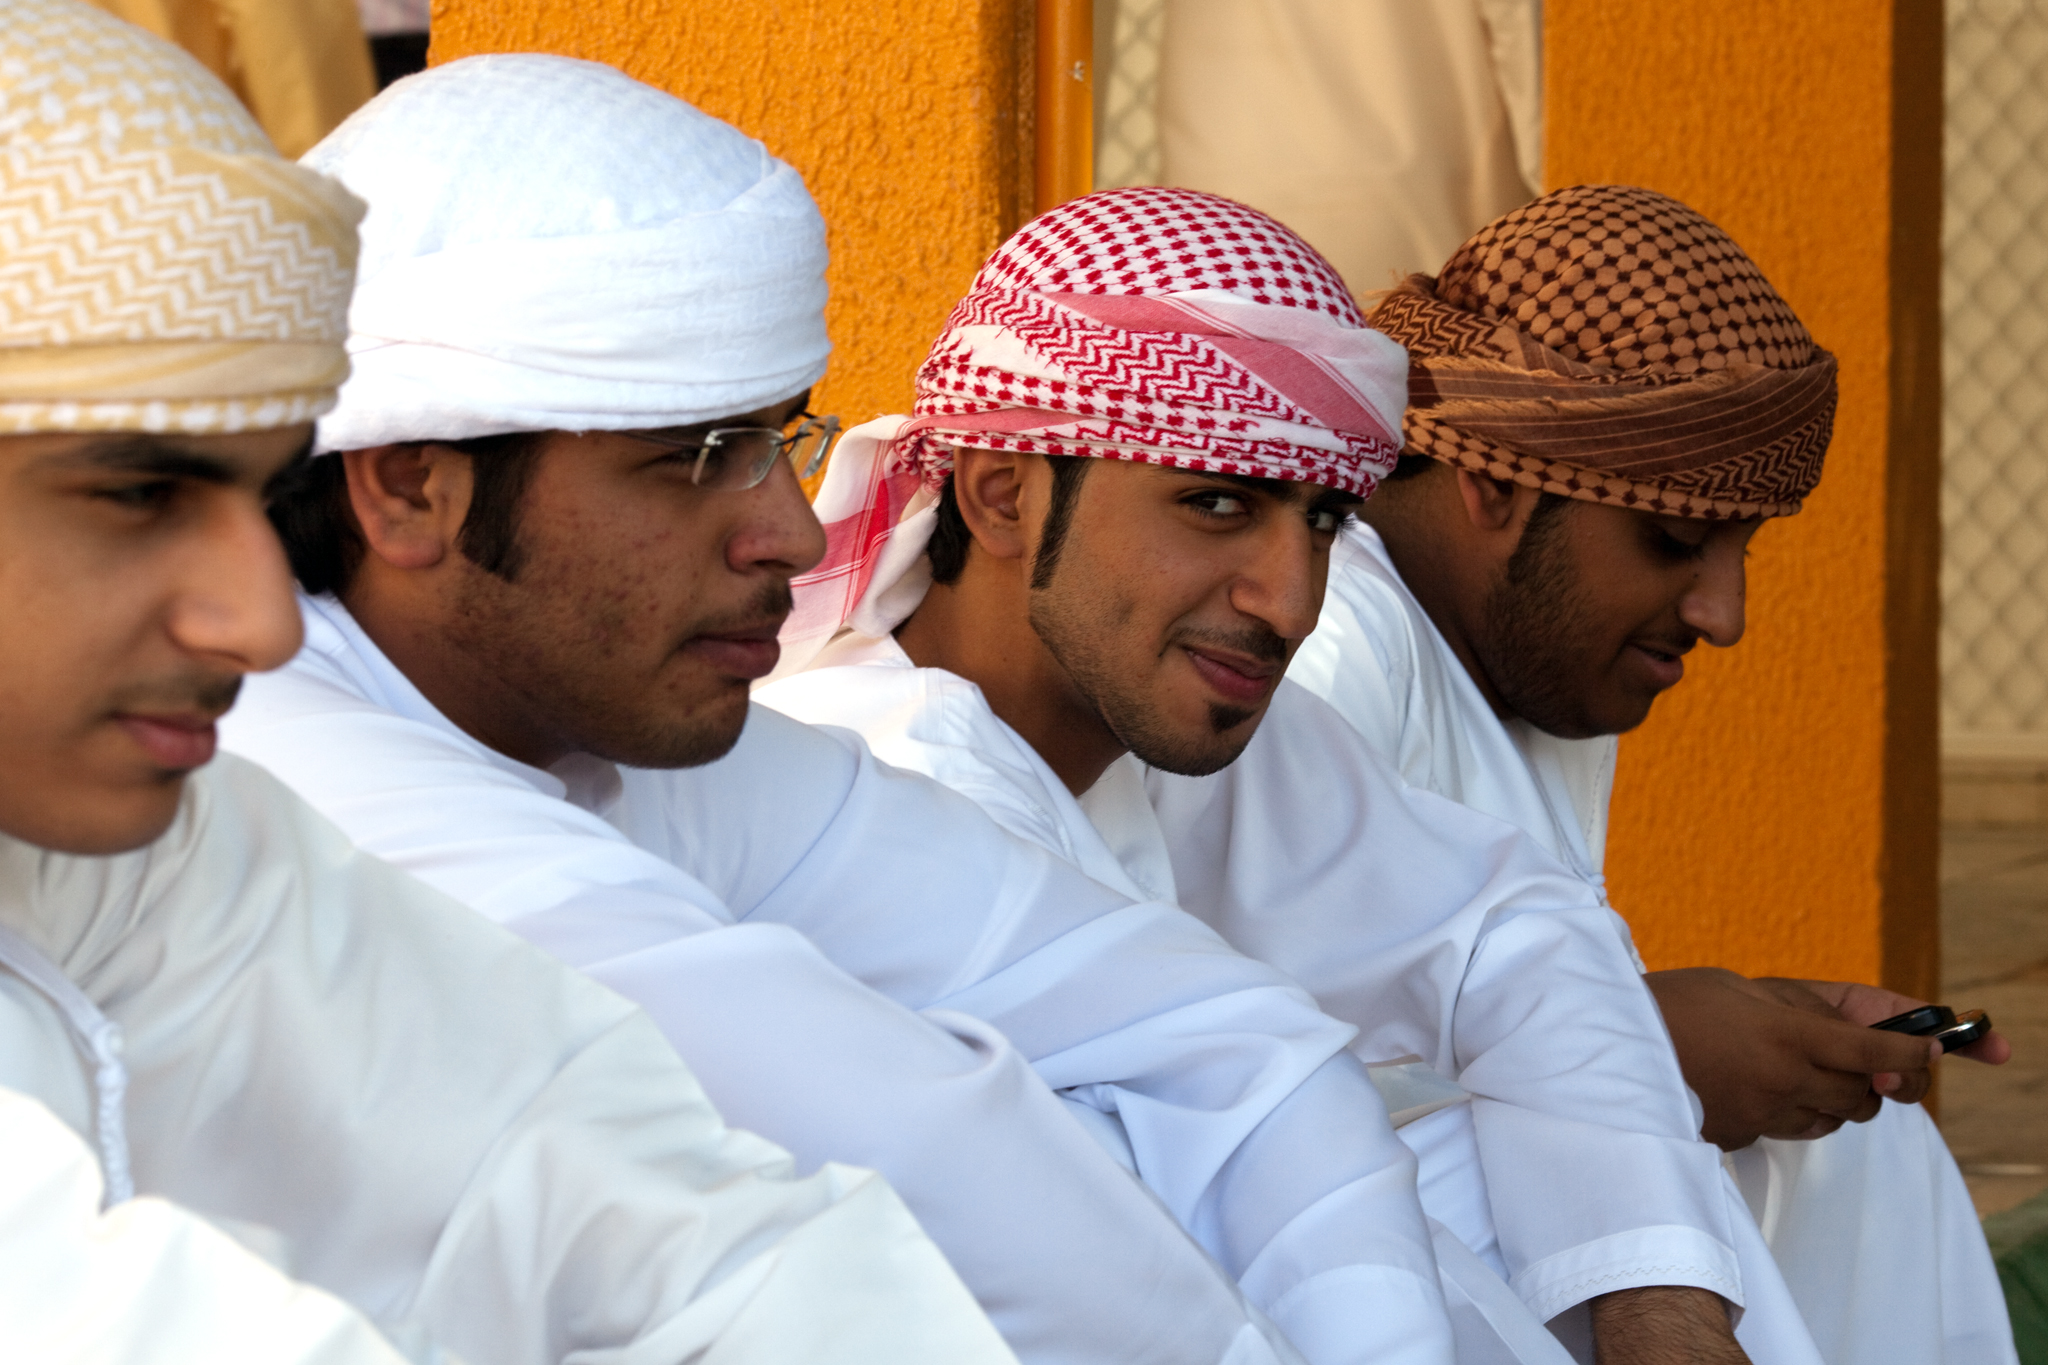 The Emirati Stereotypes | The Human Breed Blog